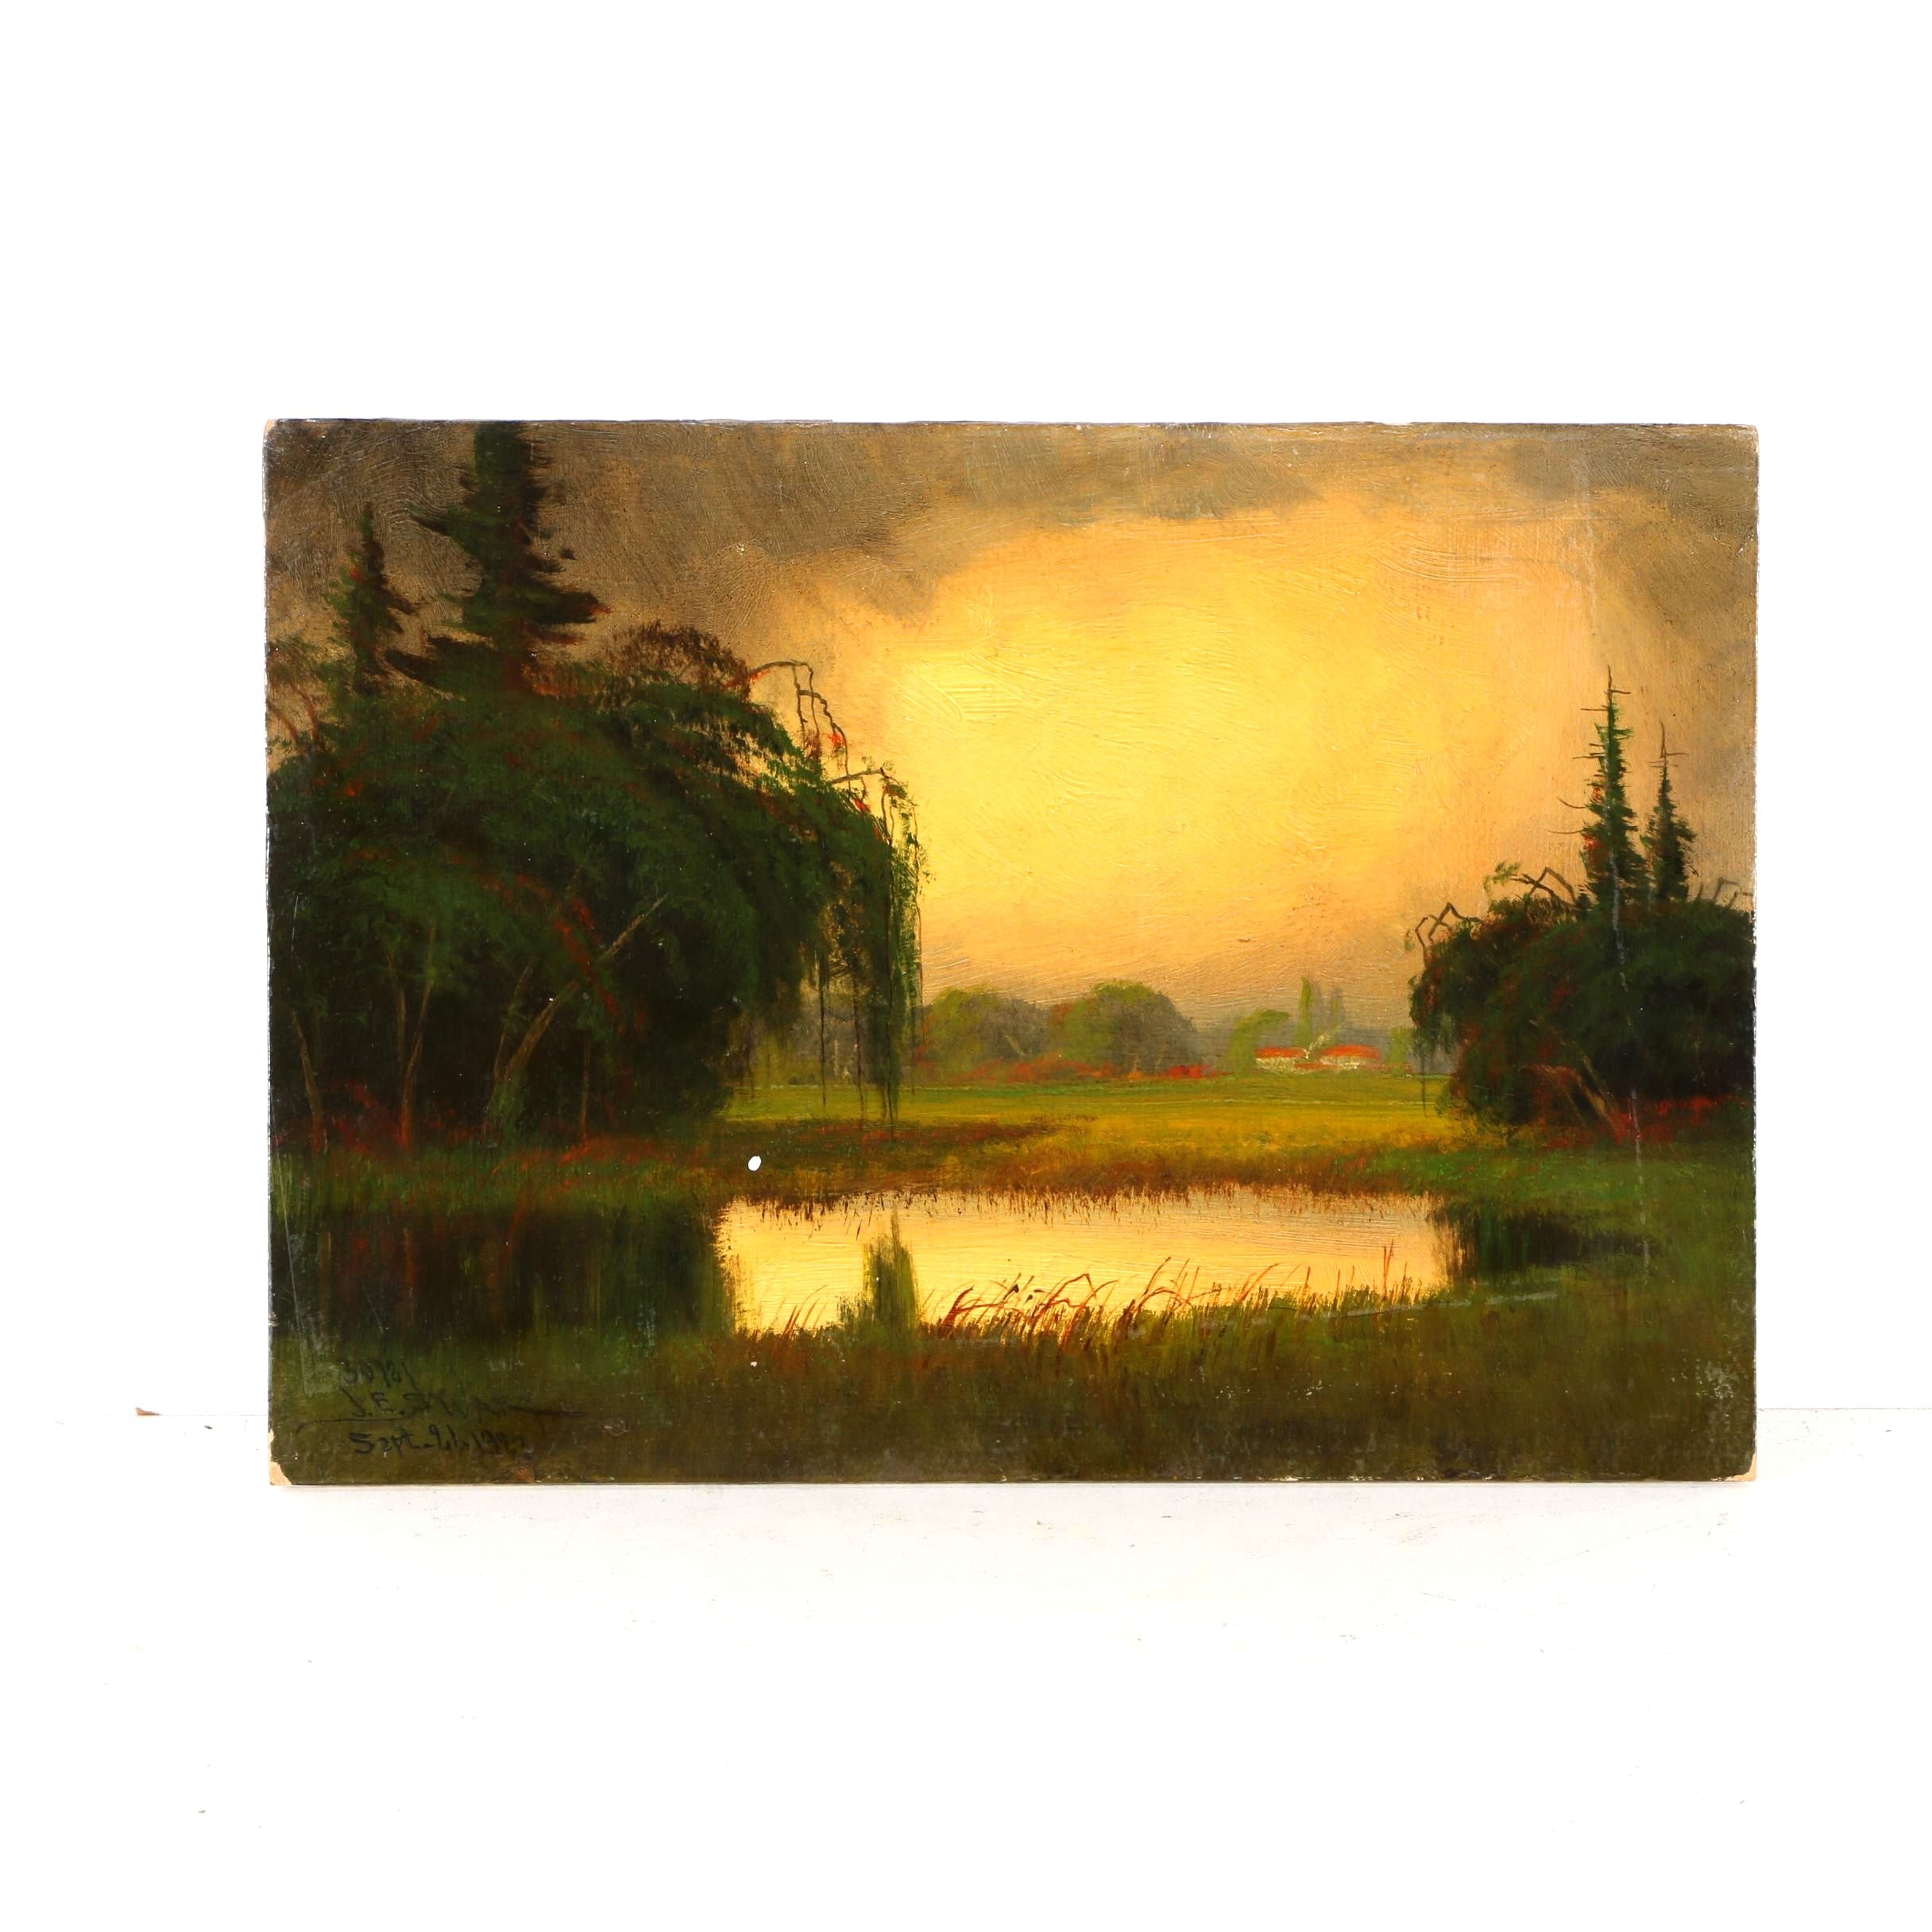 1923 James Everett Stuart Oil on Board of Landscape Near Courtland, CA